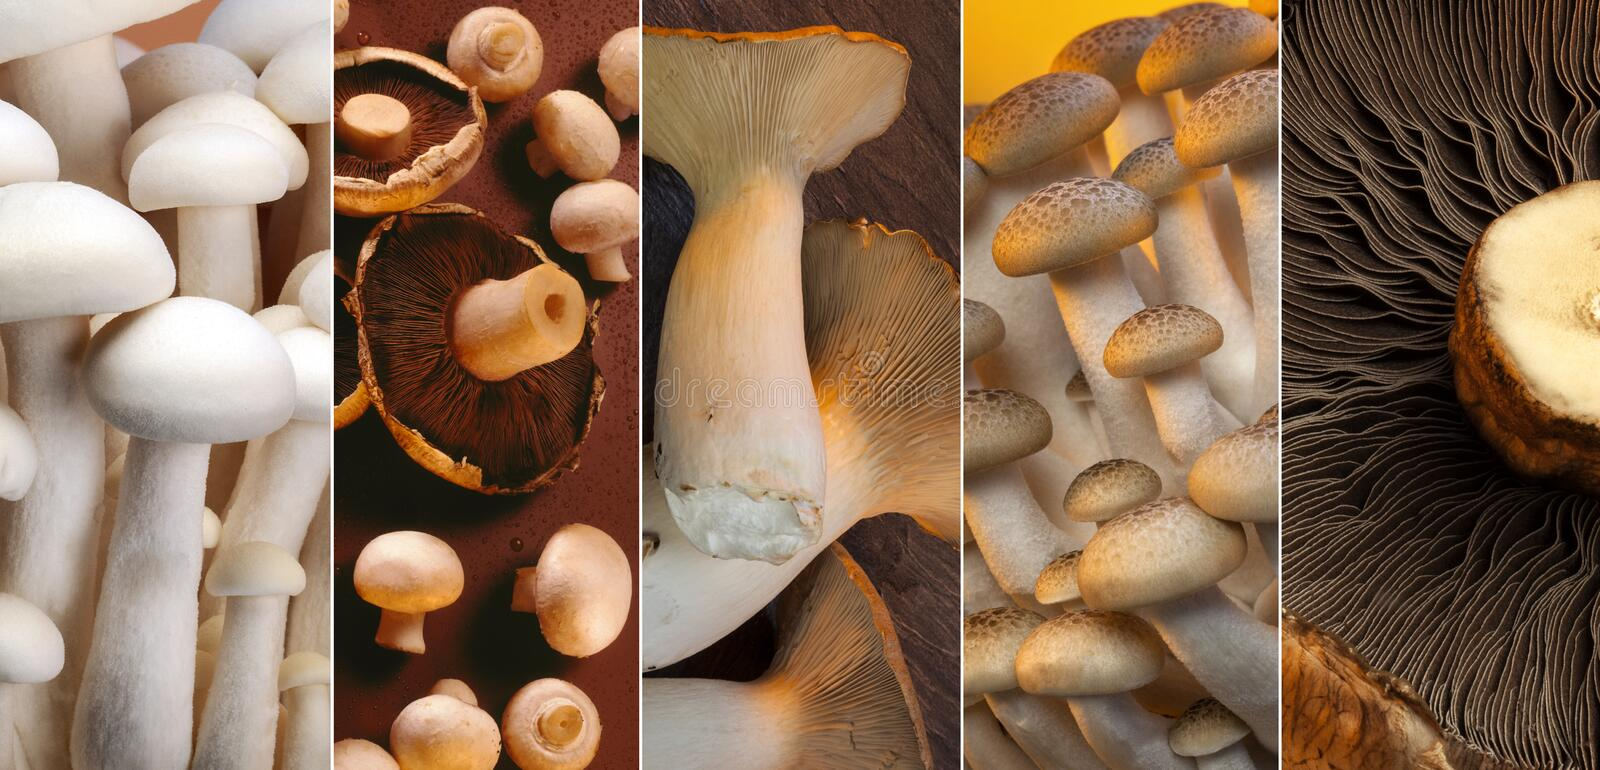 Wild Mushrooms. A selection of Wild Mushrooms - Enoki, Shiro Shimeji, Buna Shimeji, button mushrooms, King Oyster and Portabello stock images